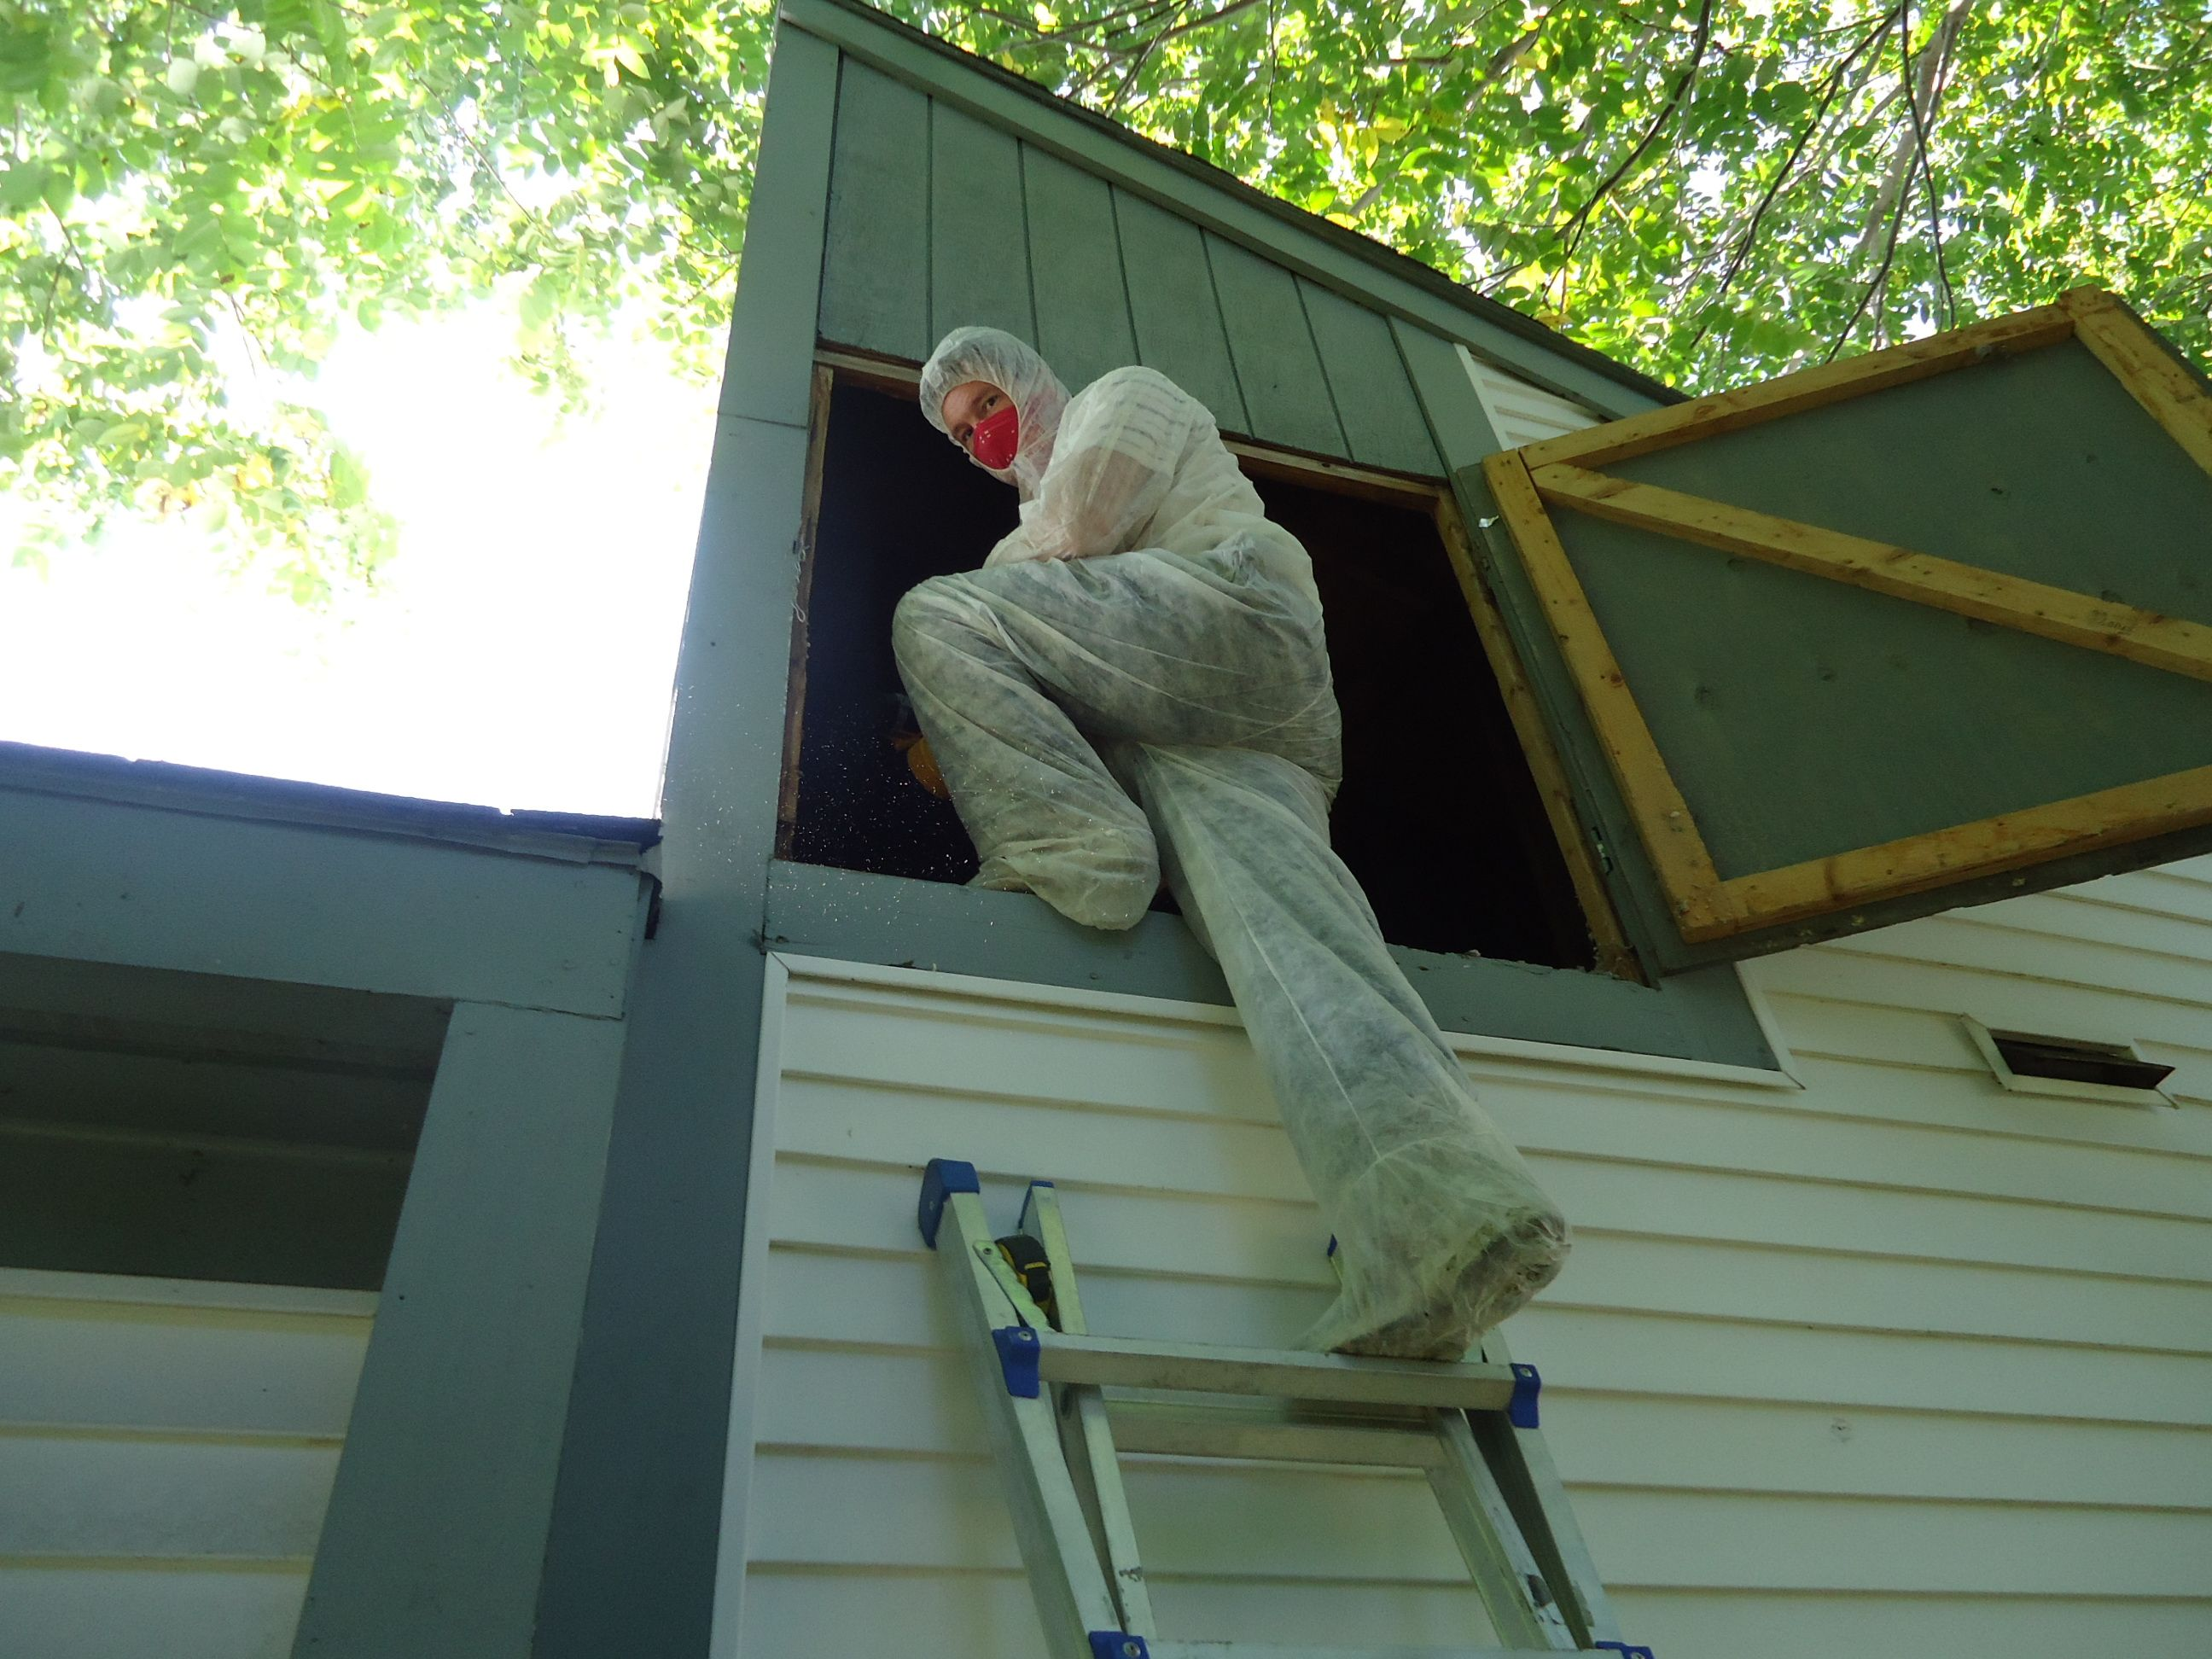 crawling through attics is fun but messy. Make sure you are protected! #nerdalert #energyefficiency